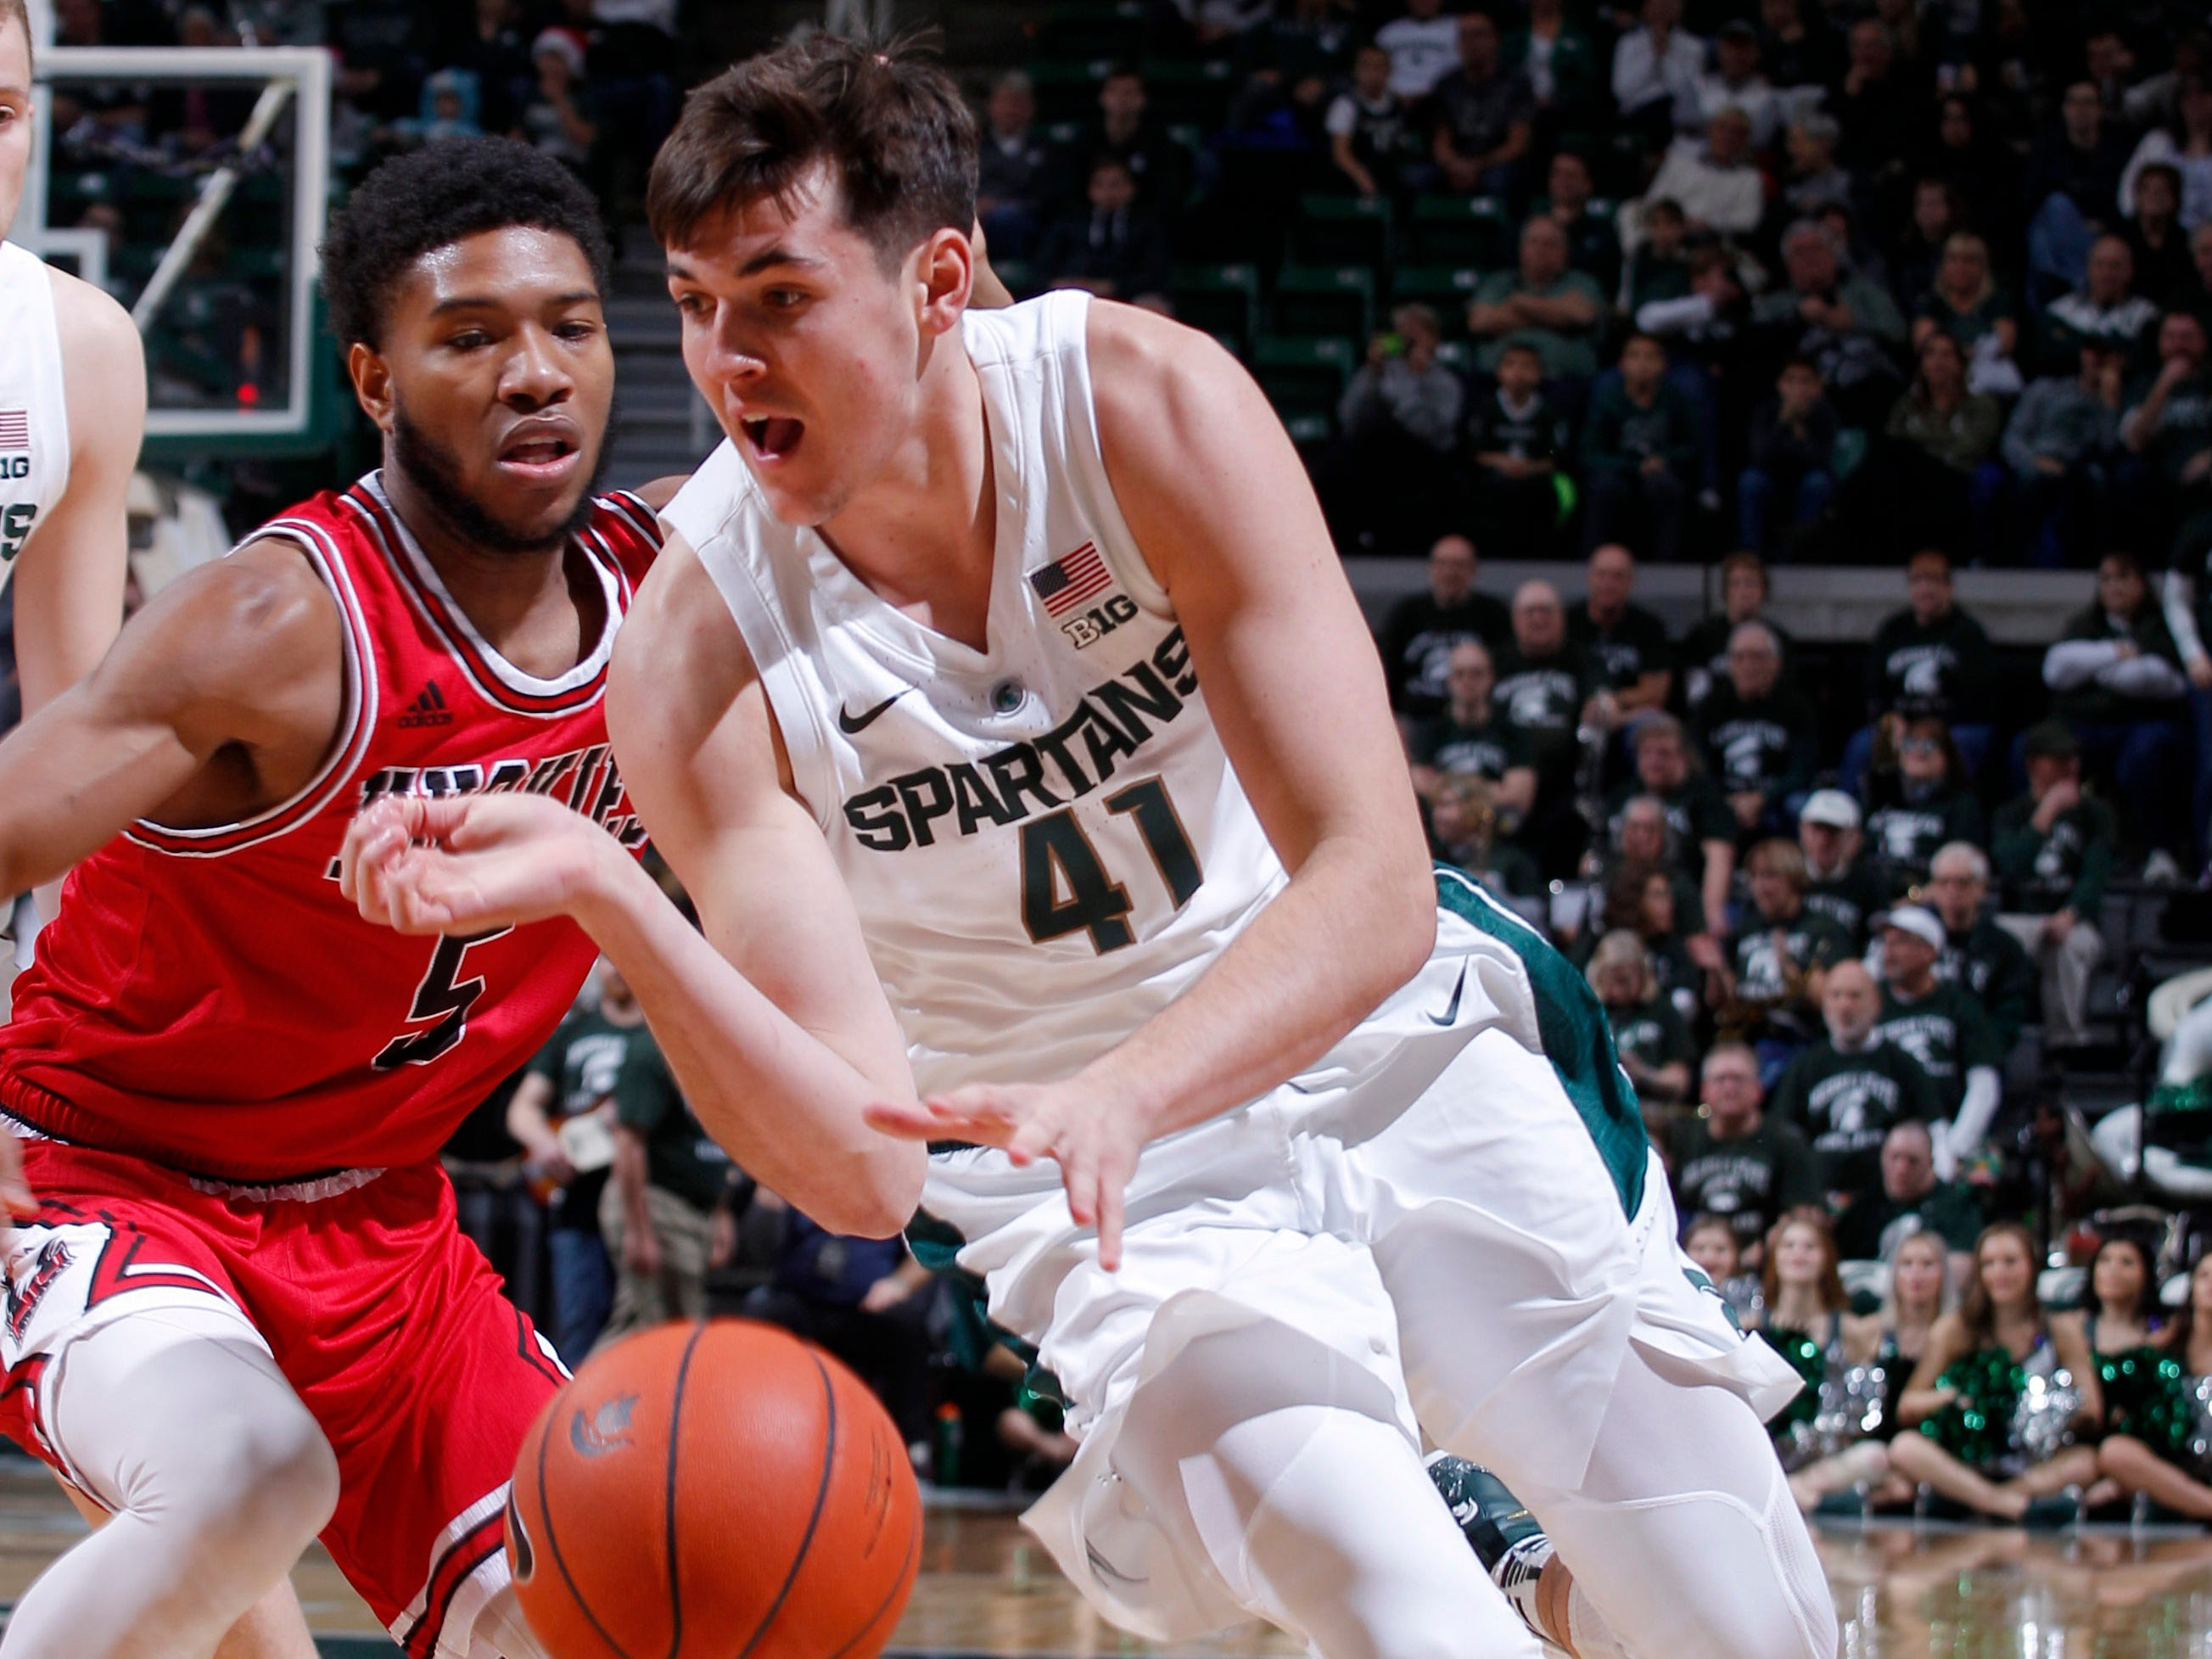 Michigan State's Conner George, right, drives against Northern Illinois' Zaire Mateen, Saturday, Dec. 29, 2018, in East Lansing, Mich.